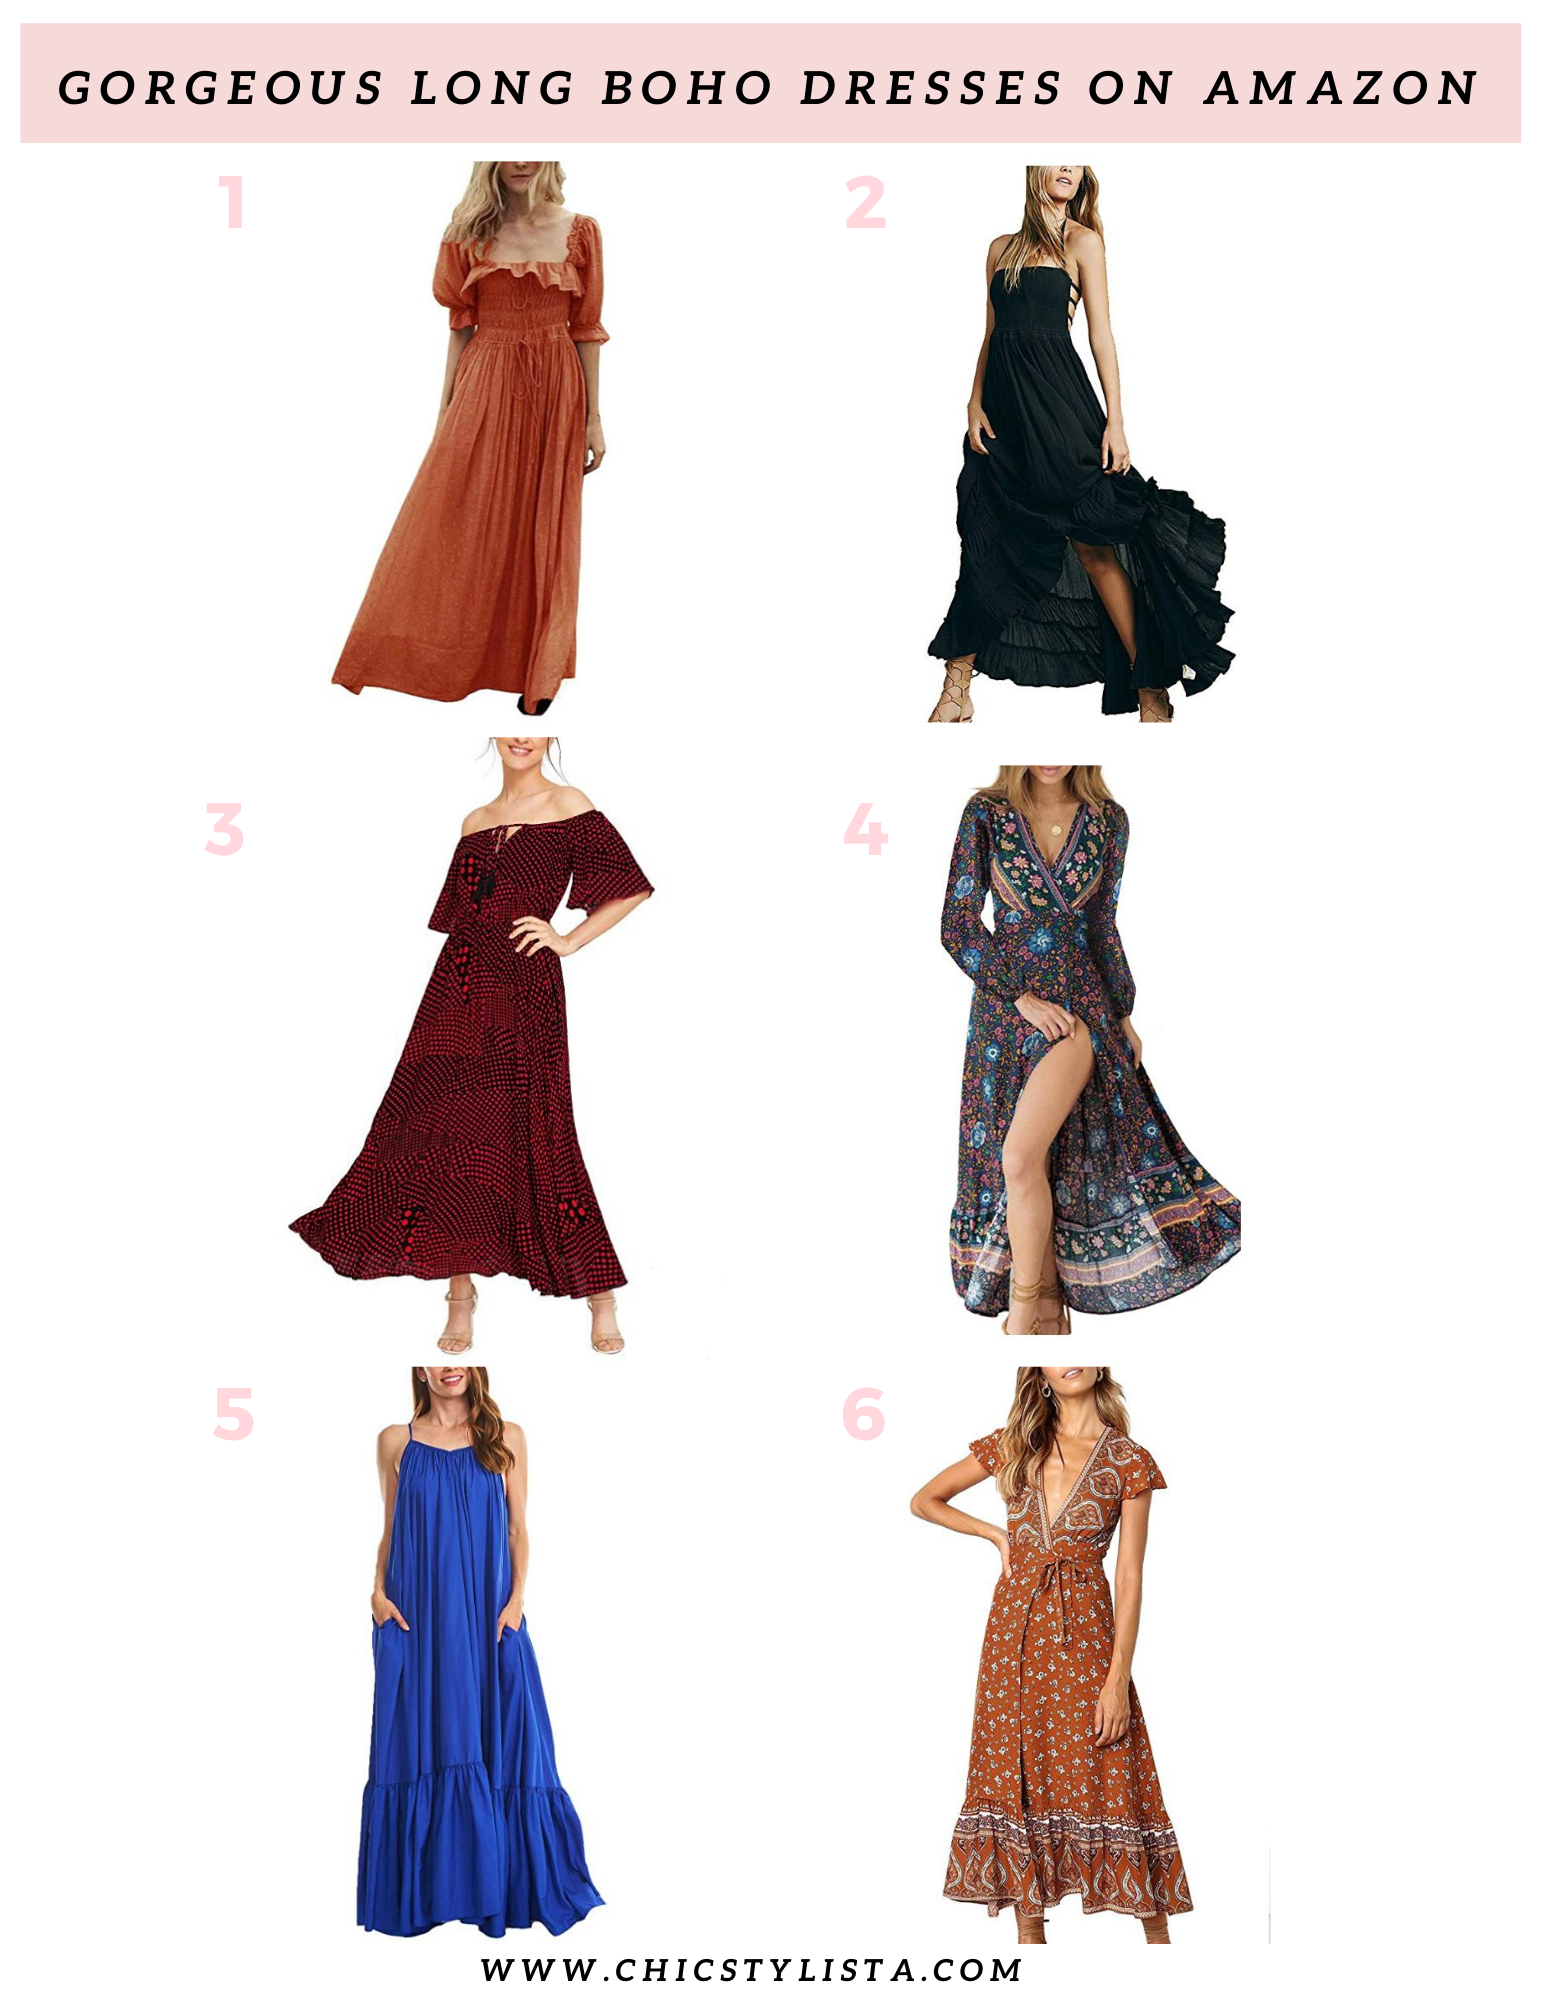 Shop Gorgeous Long Boho Dresses on Amazon Prime